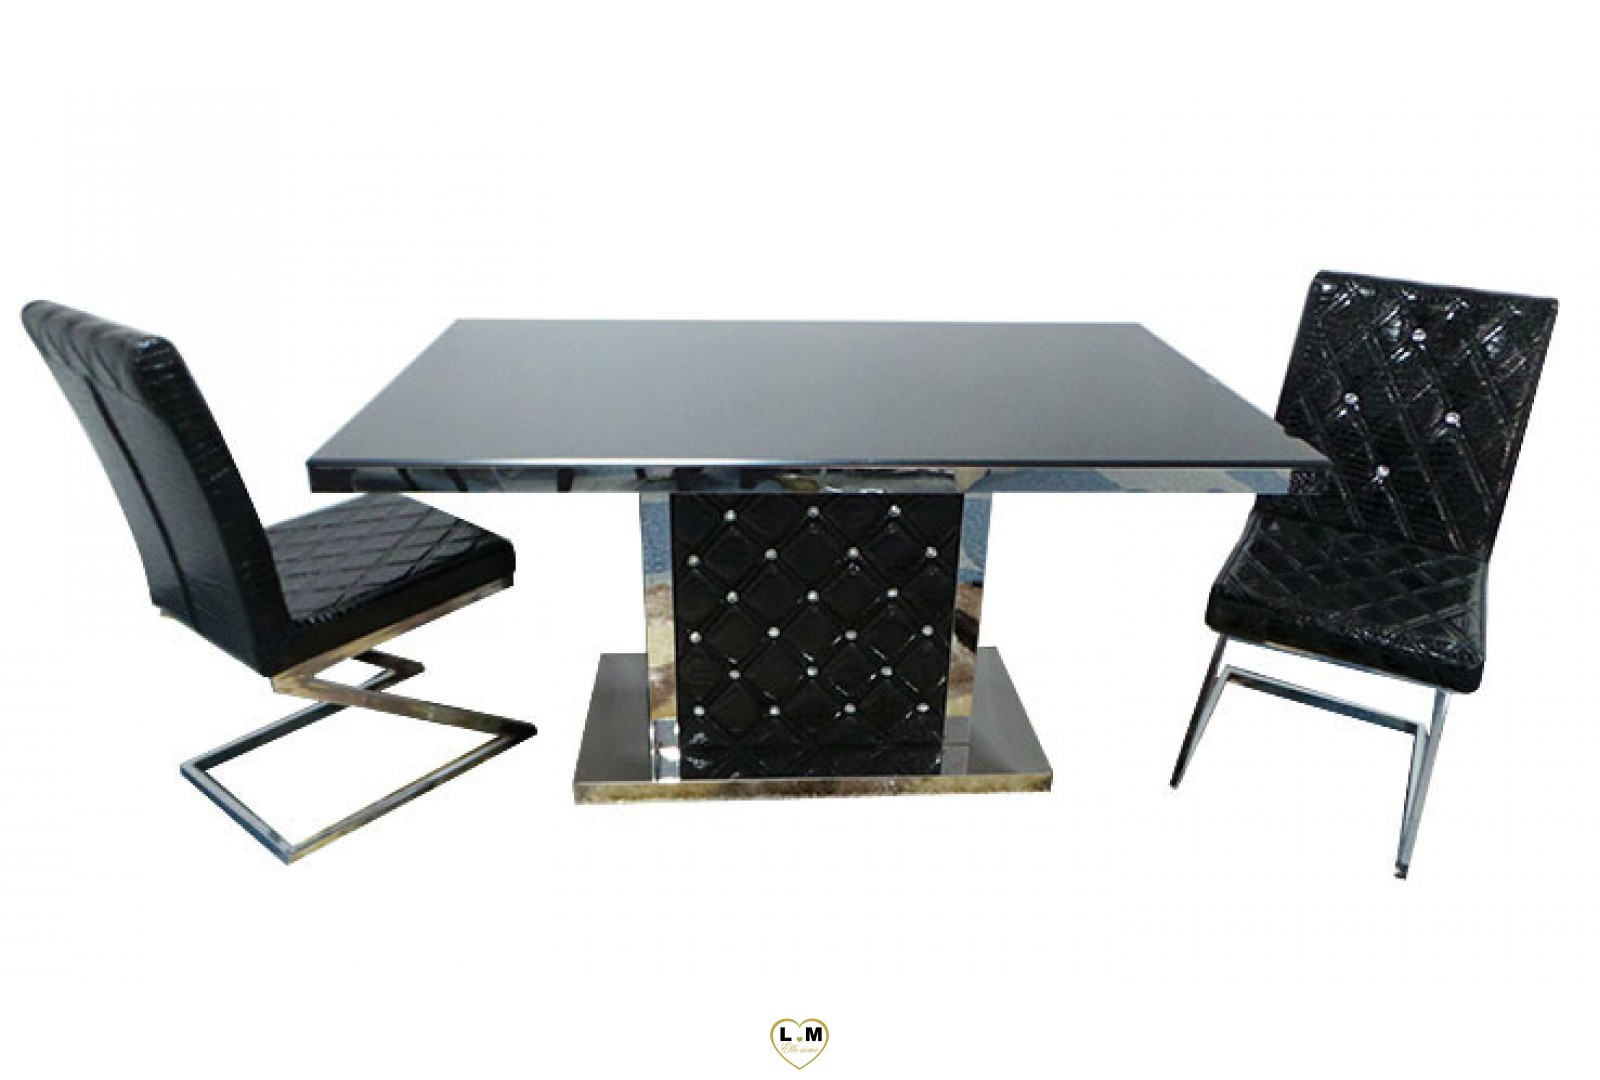 t8032n table salle a manger noire plateau verre noir lignemeuble com. Black Bedroom Furniture Sets. Home Design Ideas